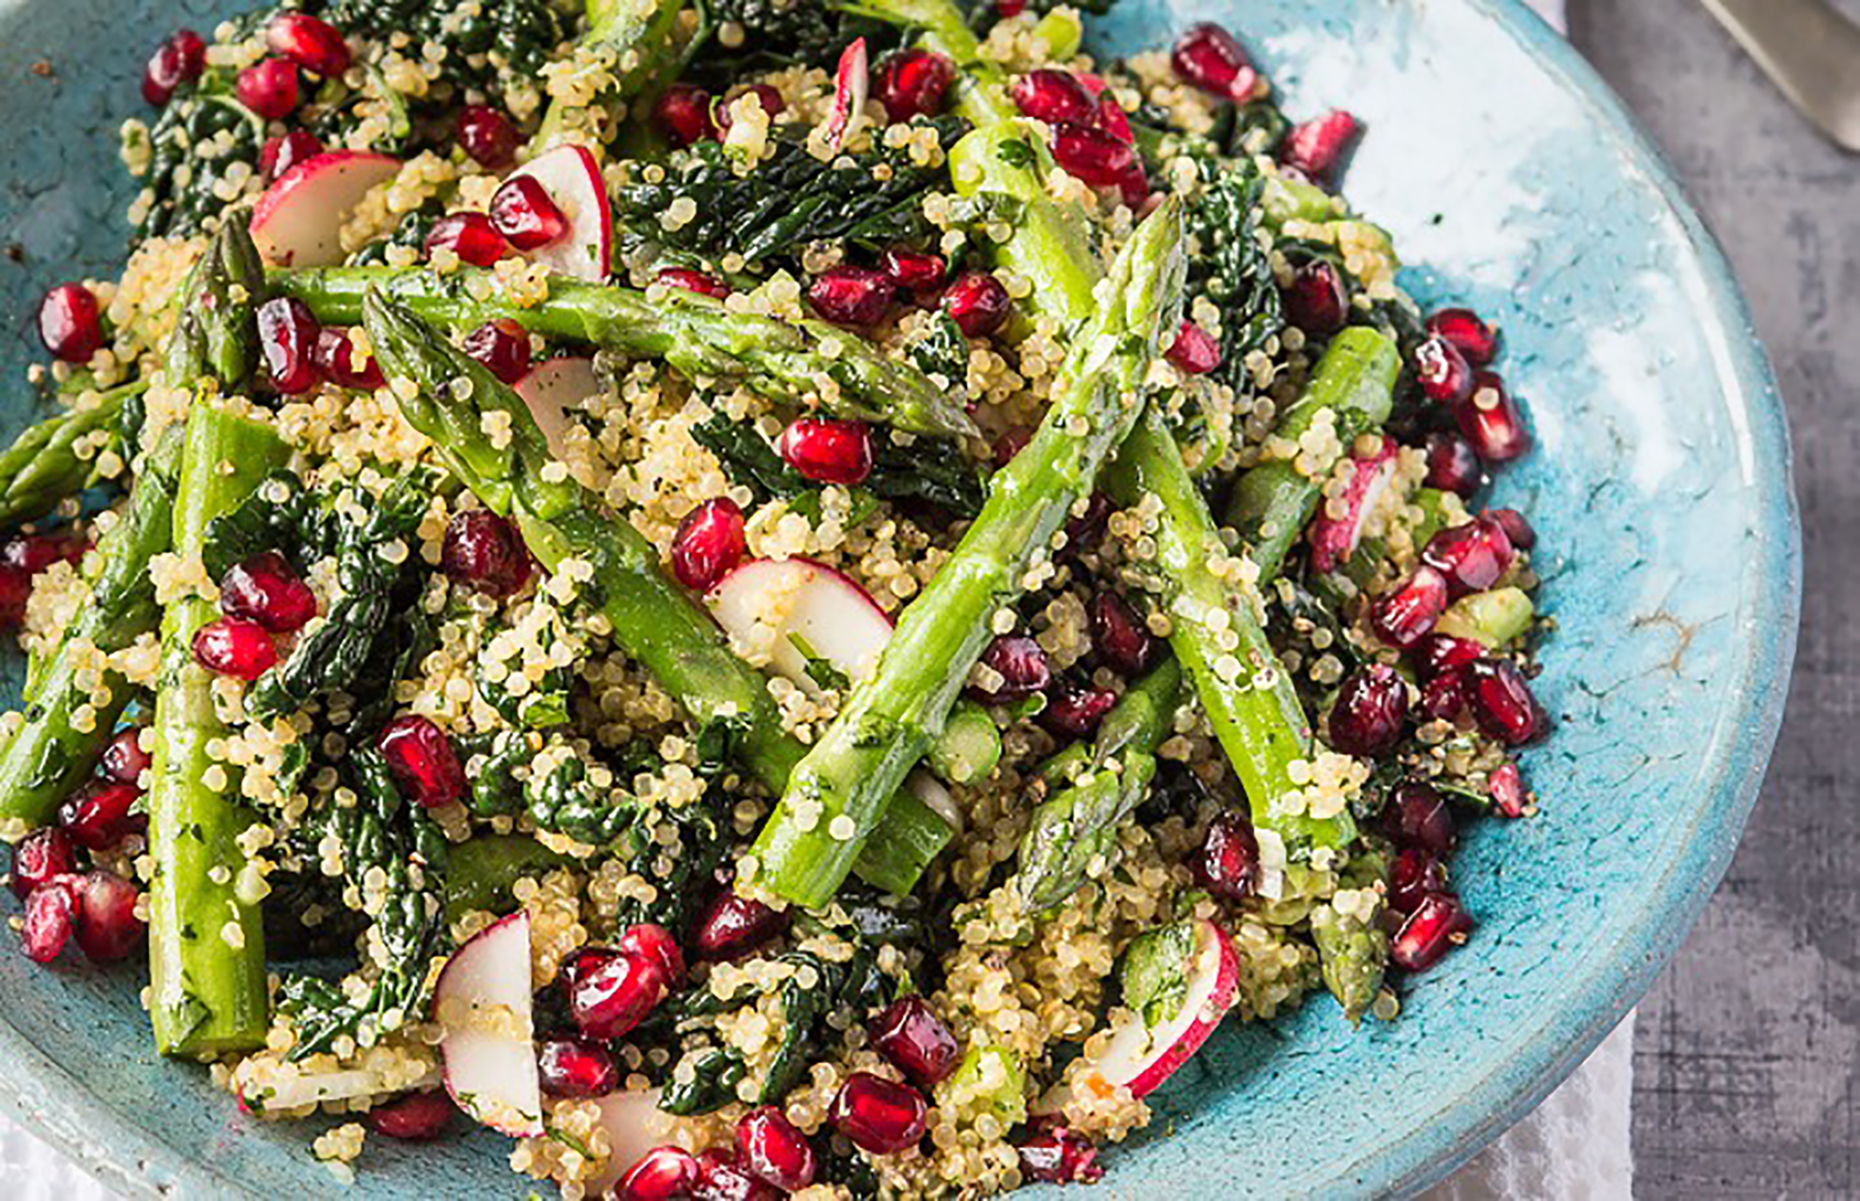 Quinoa, kale, pomegranate and asparagus salad (Image: British Asparagus/loveFOOD)